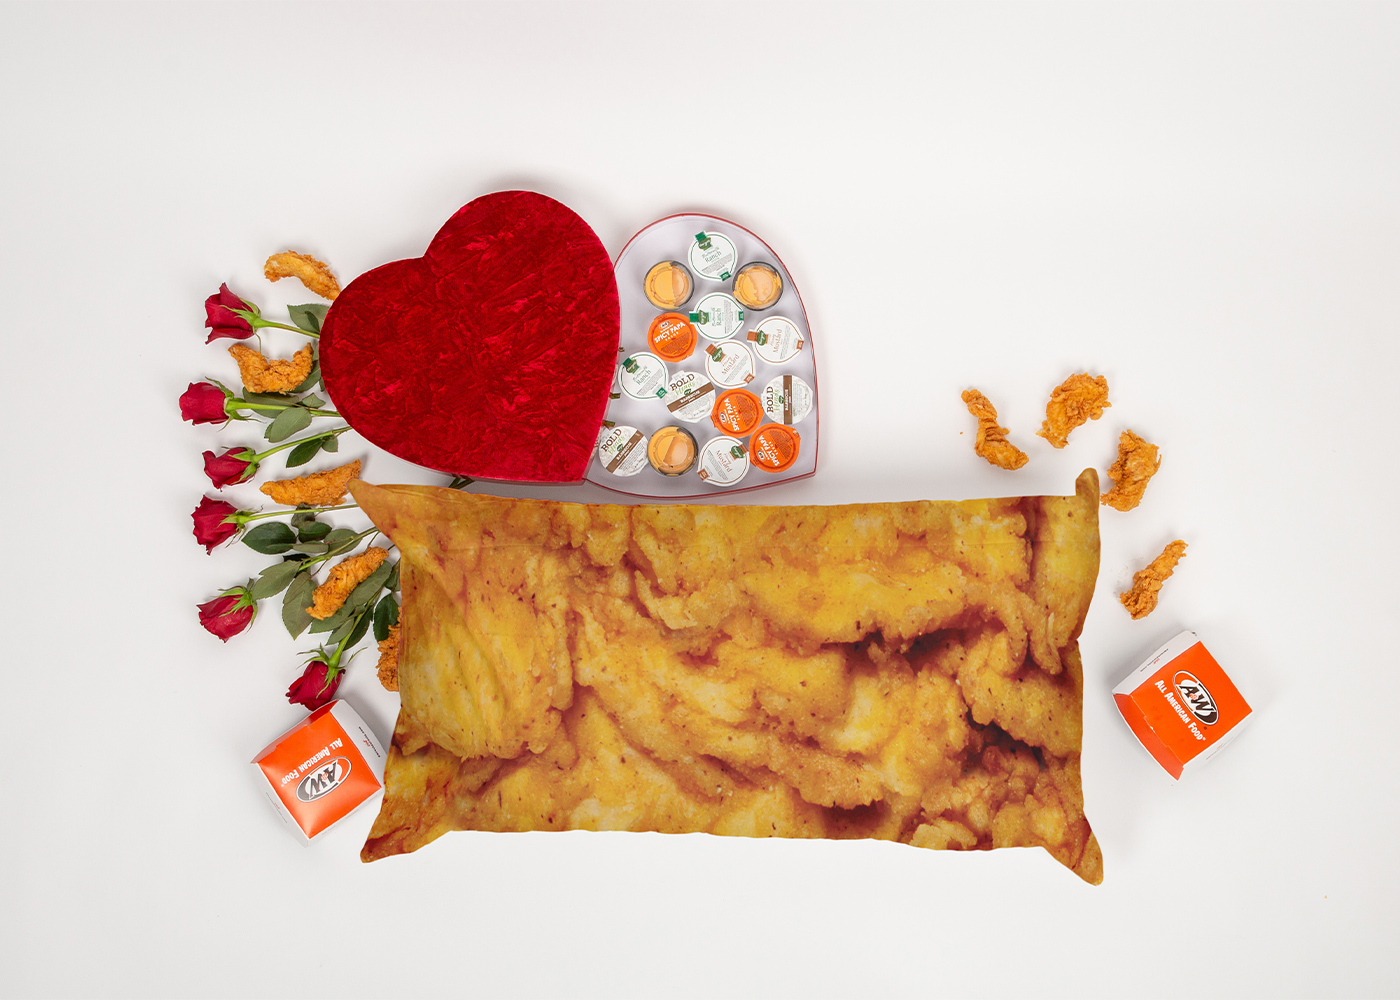 Flat lay photo of a body pillow that looks like an A&W Chicken Tender. The pillow is surrounded by a heart-shaped box filled with A&W sauces and Chicken Tenders.